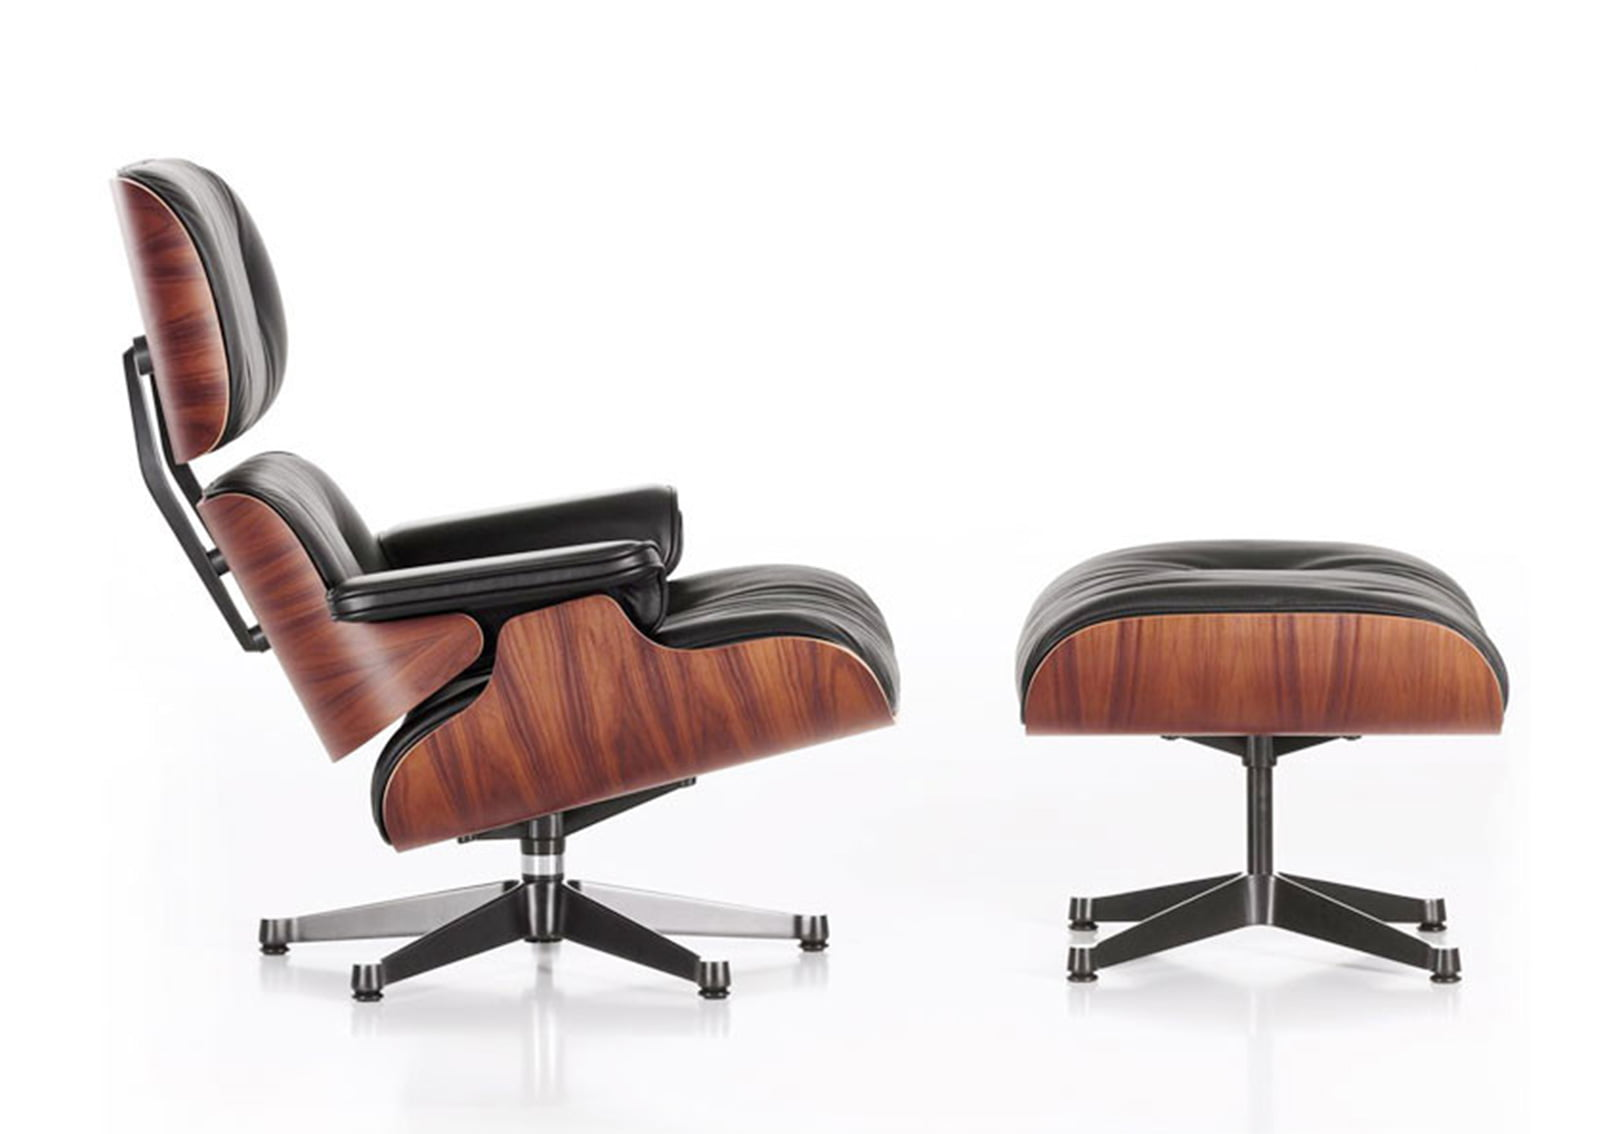 Eames chairs eames lounge chair with ottoman furnishplus for Eames lounge chair replica erfahrungen